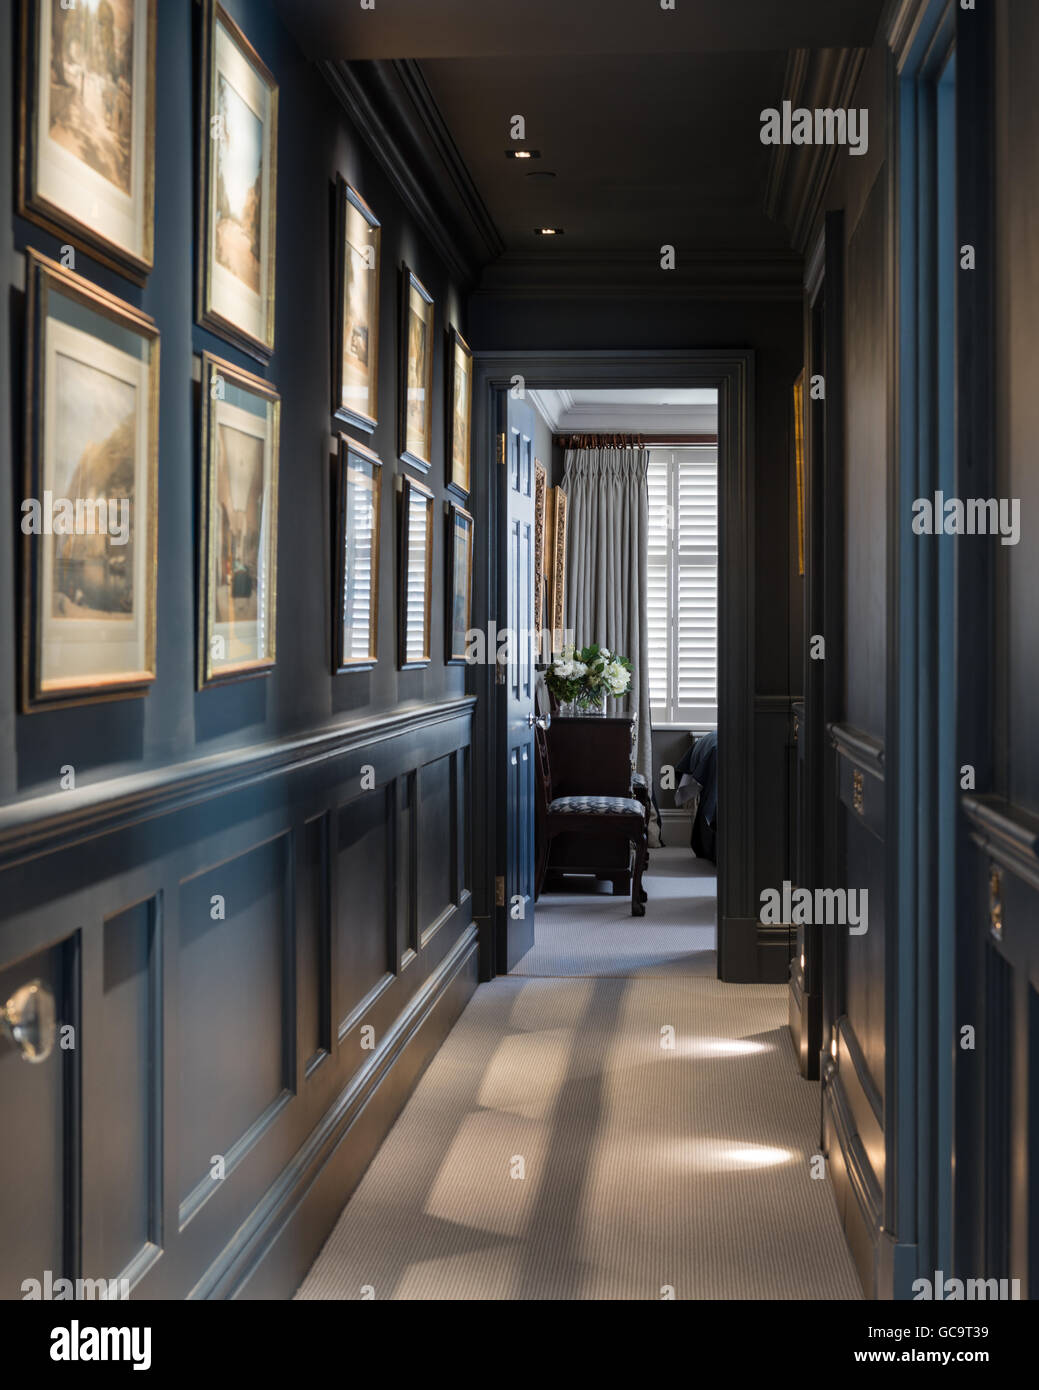 Hall walls painted in Hicks Blue by Little Greene - Stock Image